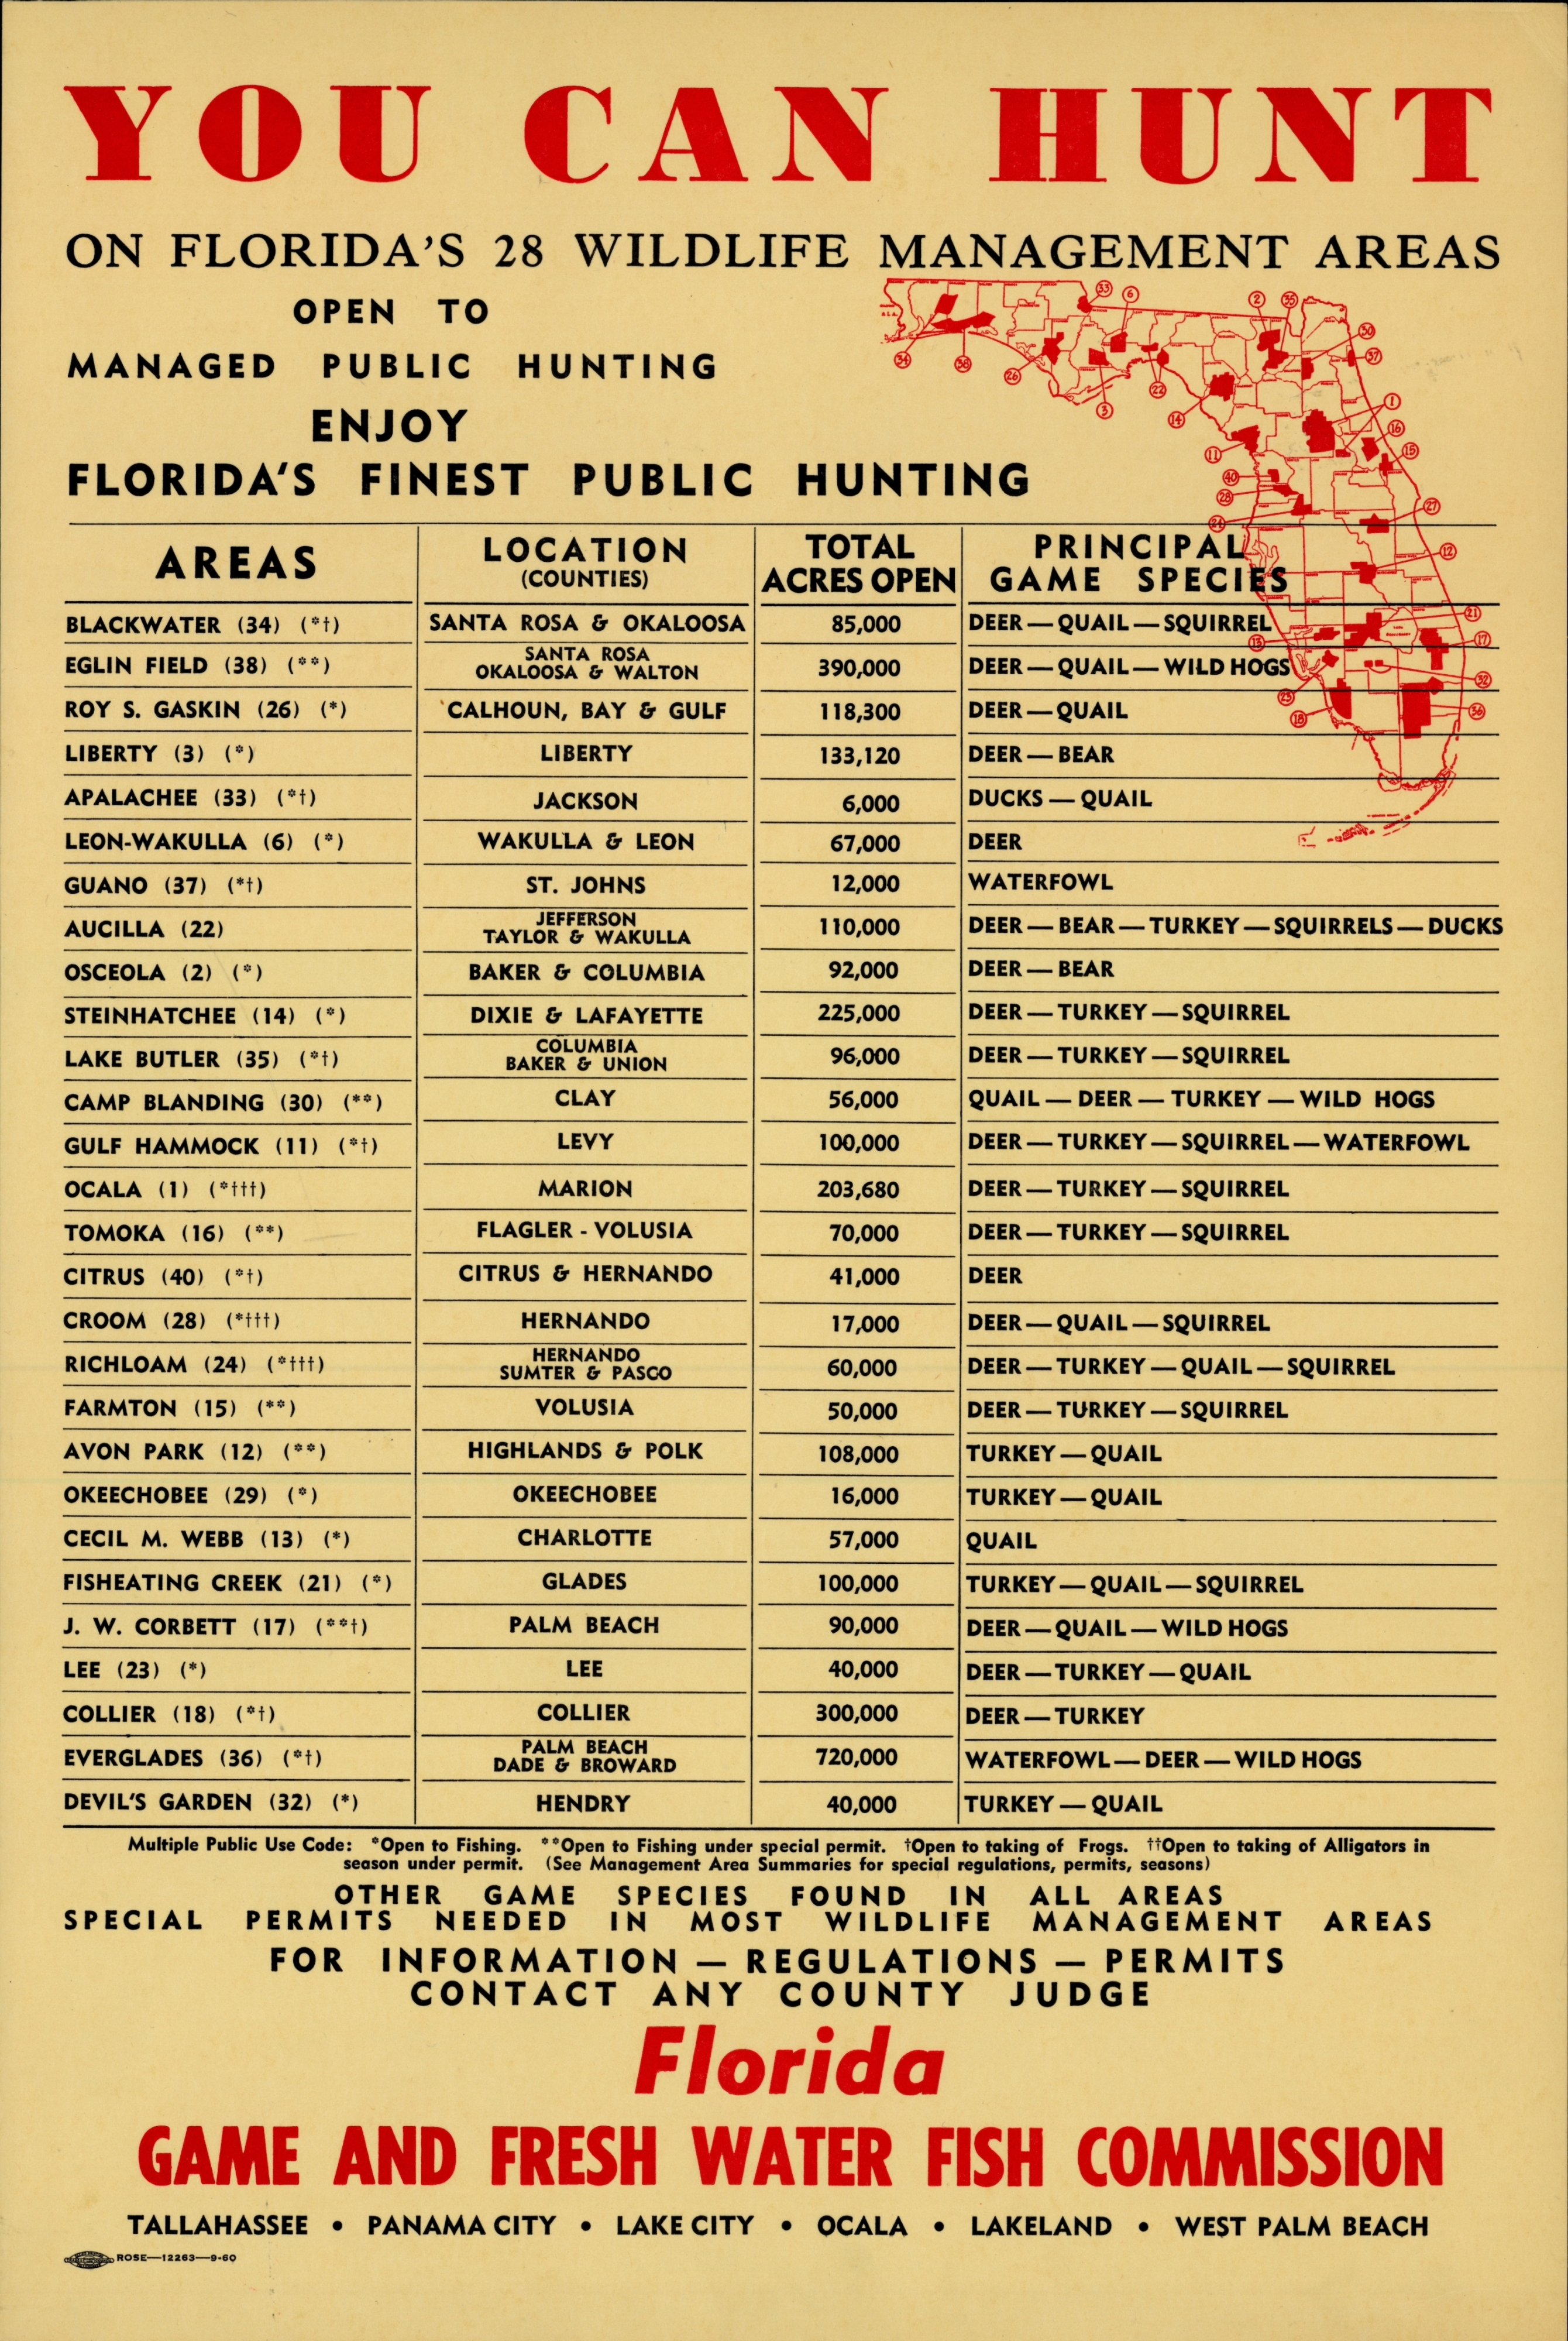 You can hunt on Florida's 28 wildlife management areas.